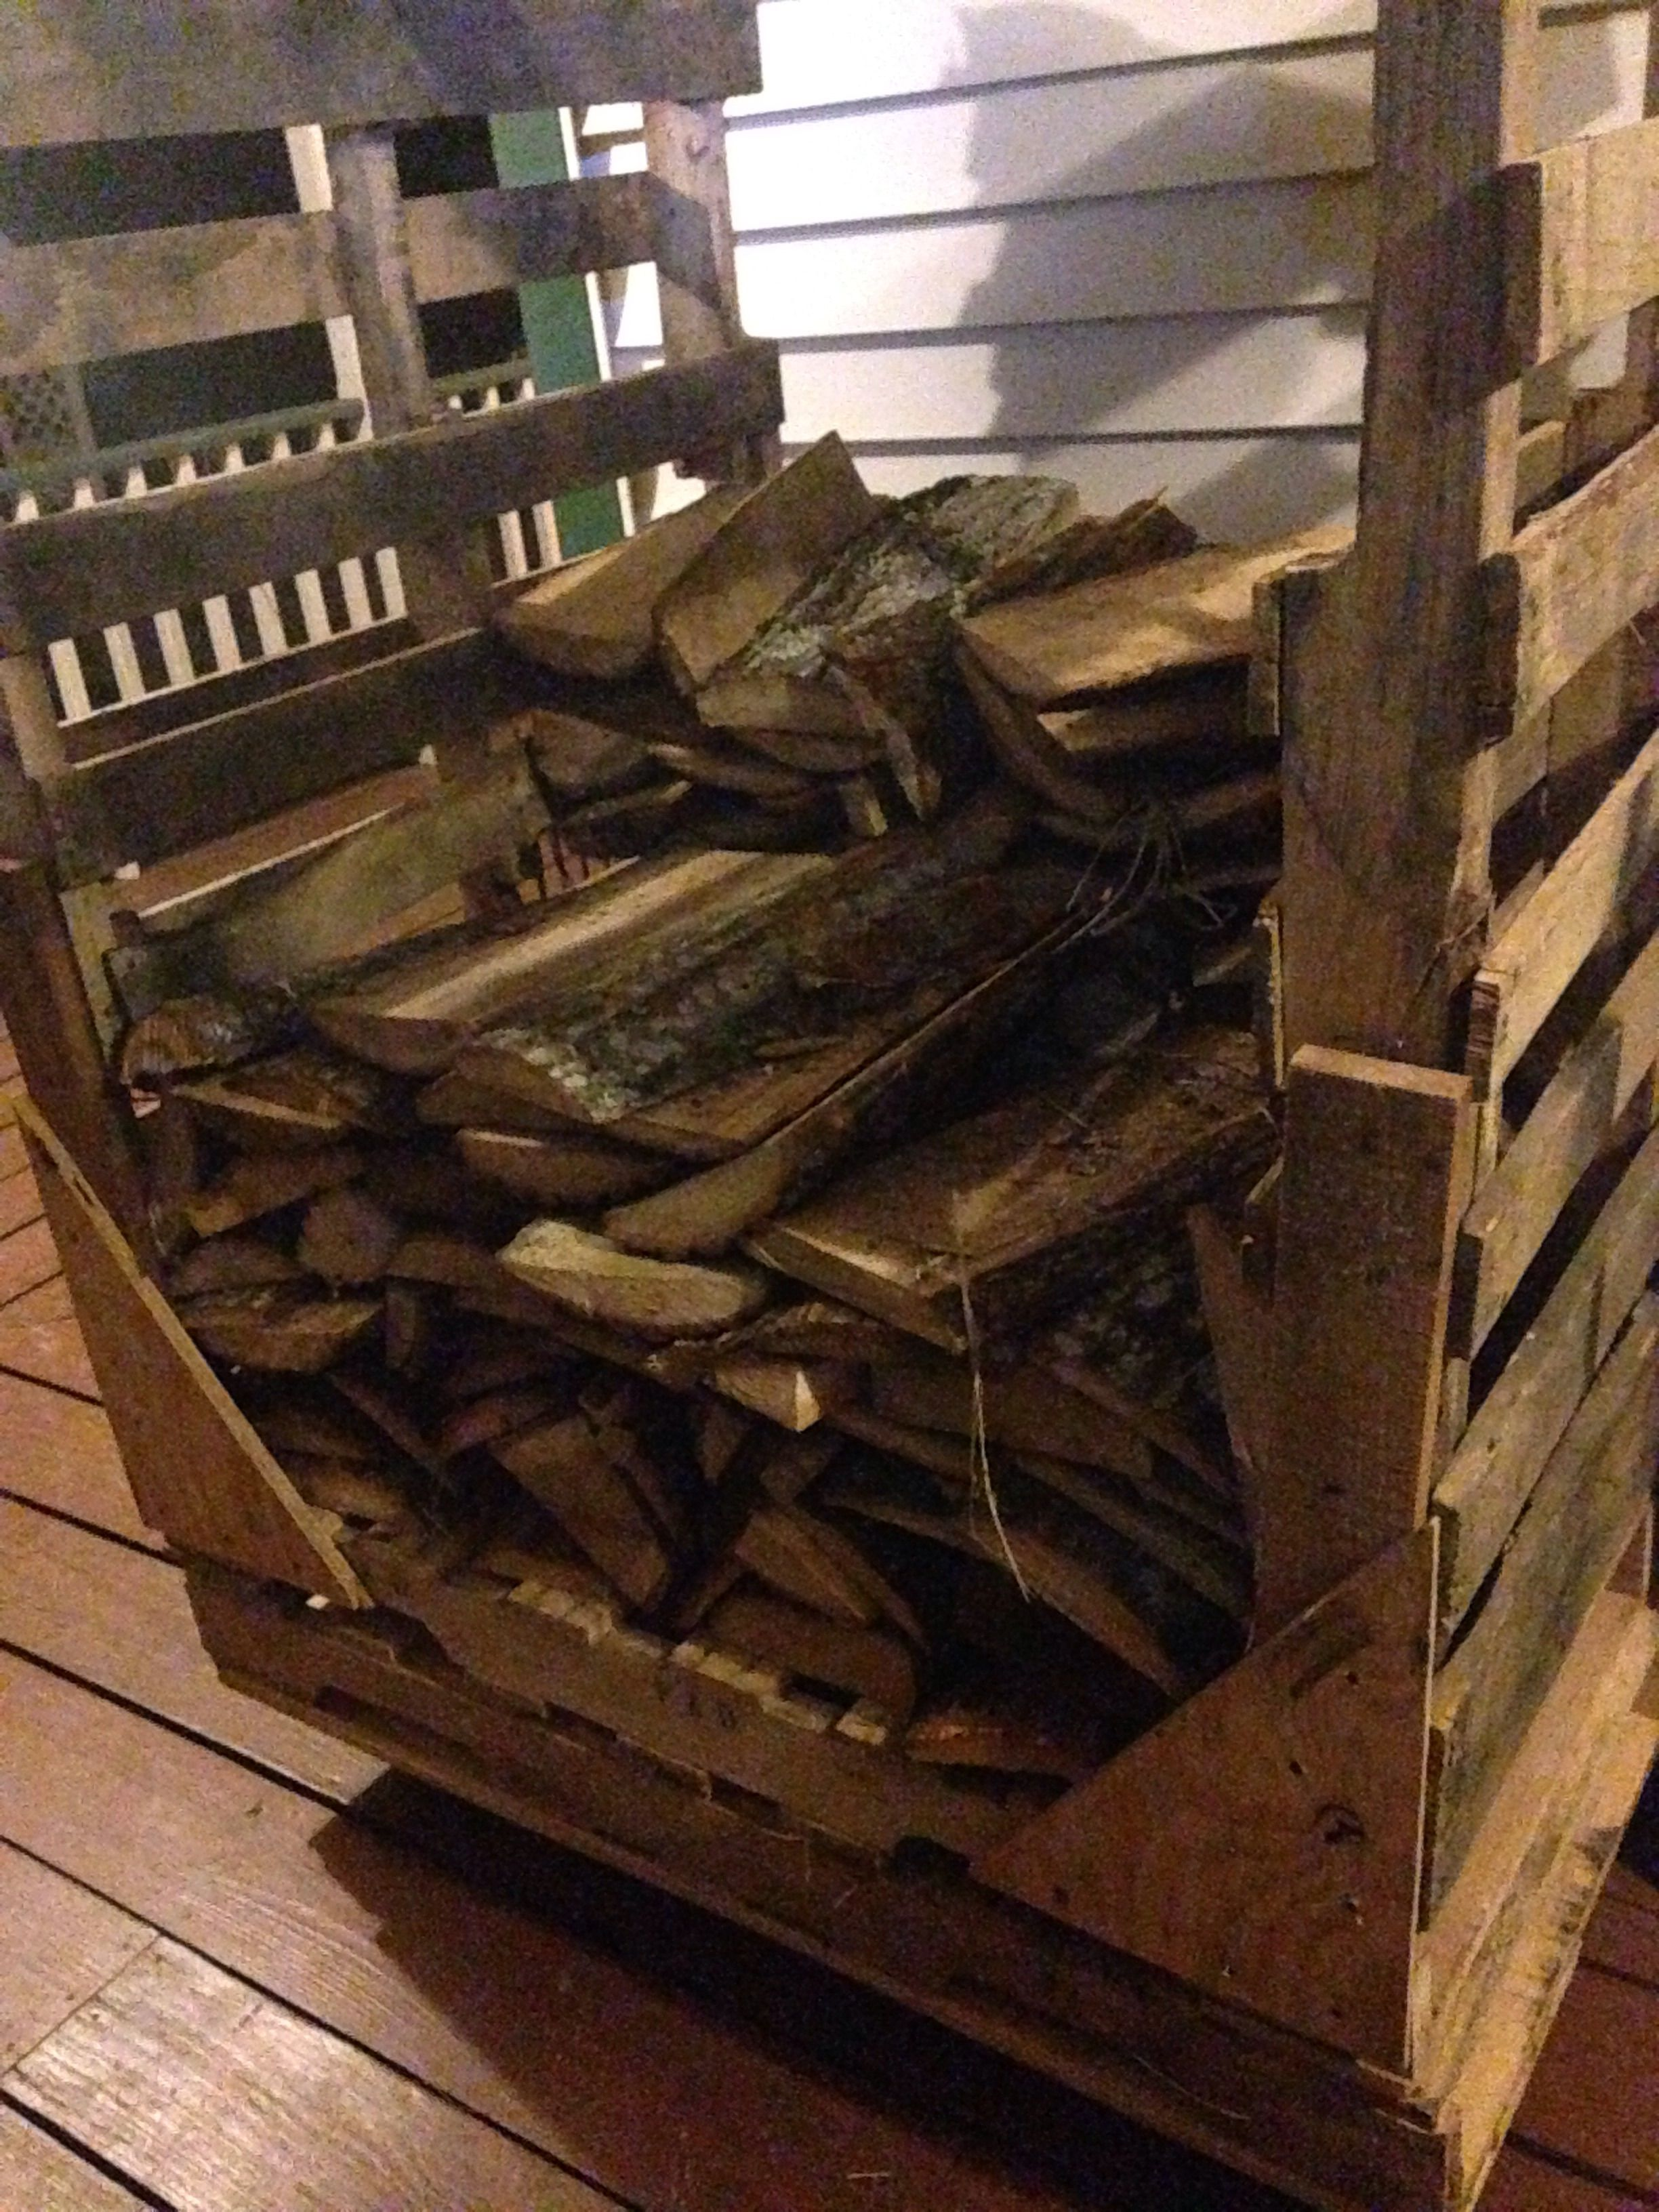 itm rack log hauler products choice fireplace mover bcp rolling caddy firewood wood carrier best dolly cart